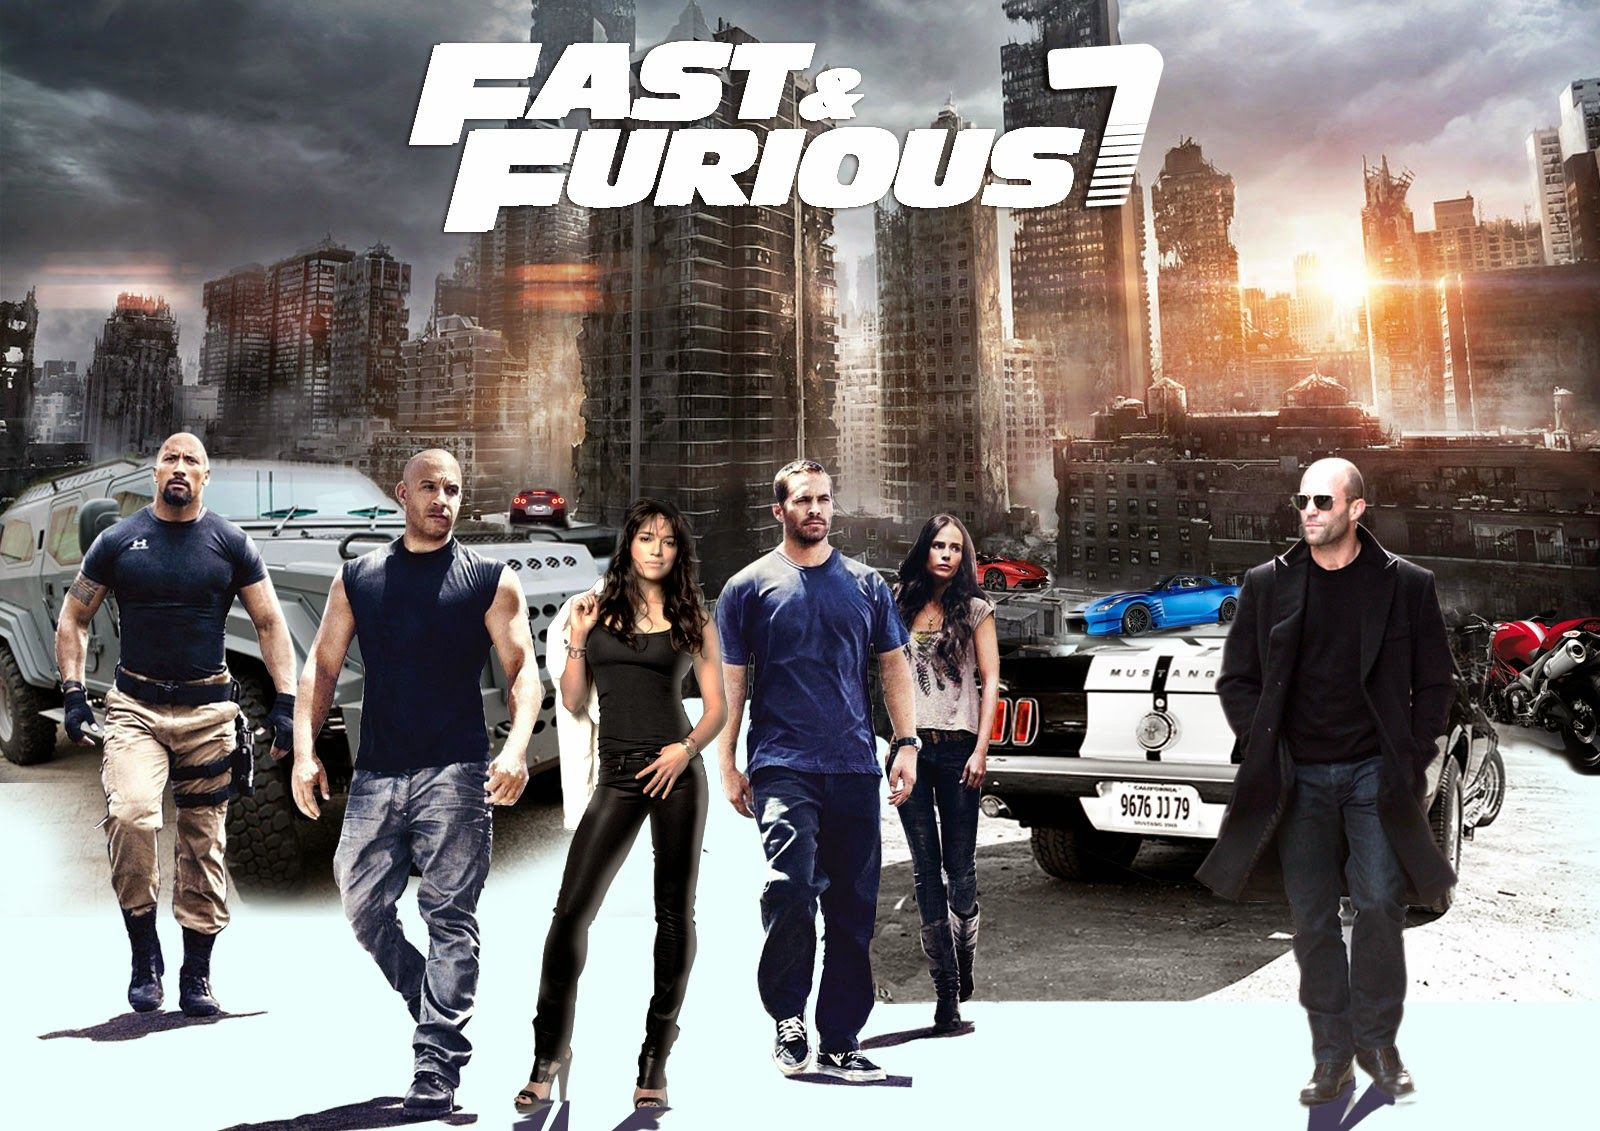 fast and furious 7 full movie watch online free megashare9